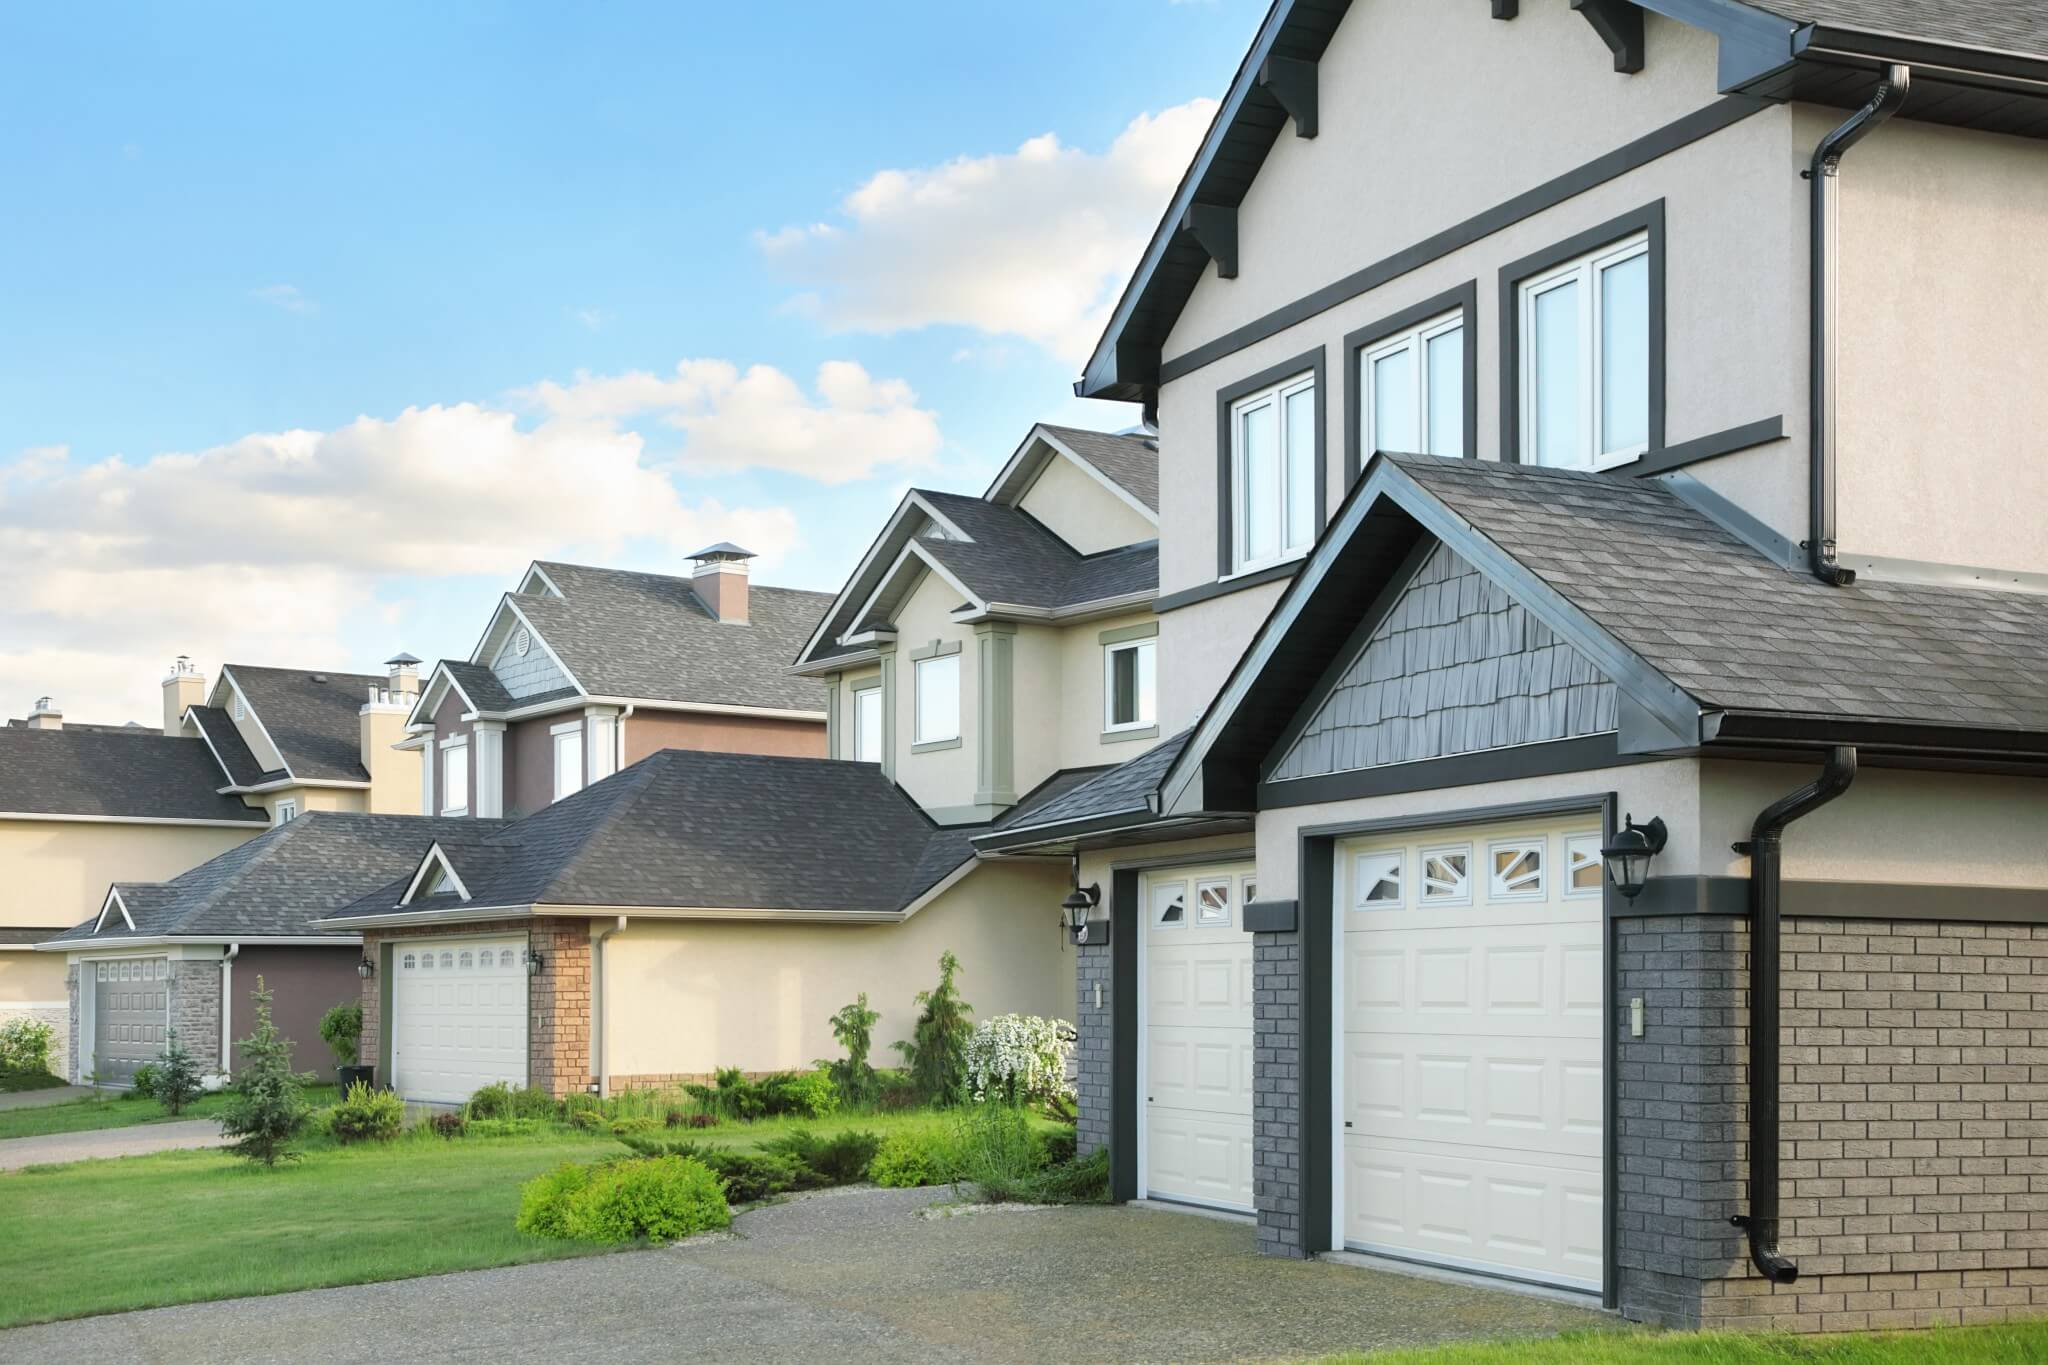 Roofing materials and costs   Roof replacement costs for